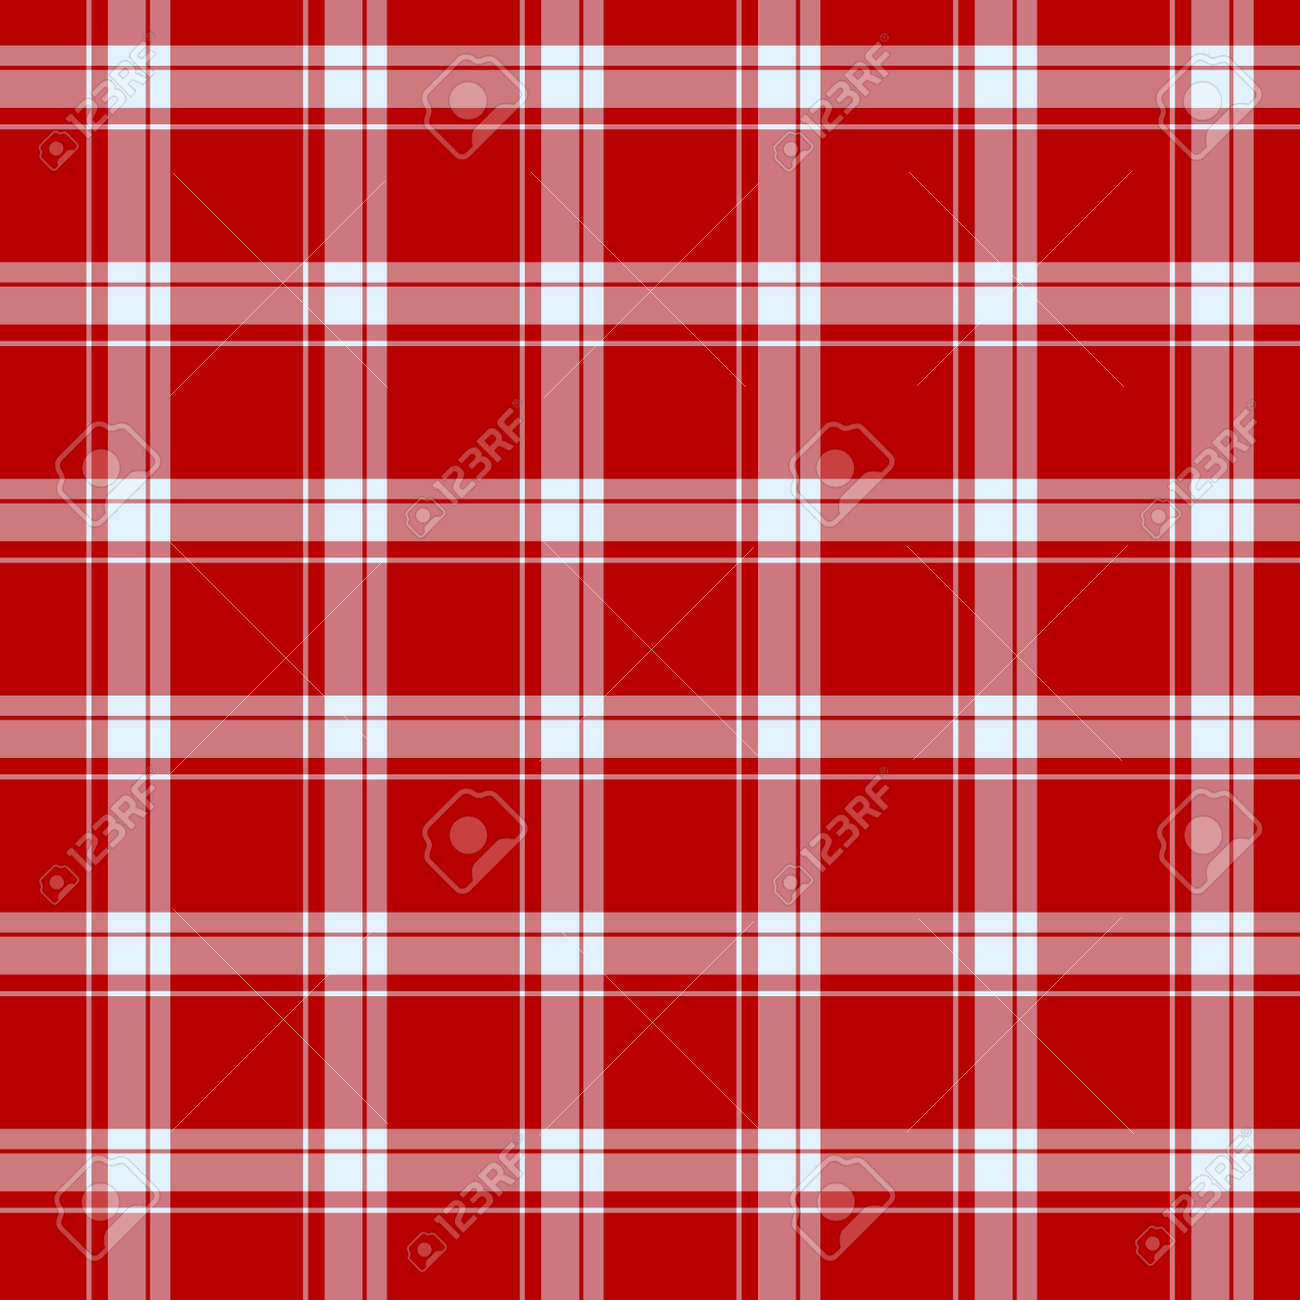 Tartan plaid pattern background. Texture for plaid, tablecloths, clothes, shirts, dresses, paper, bedding, blankets, quilts and other textile products. Vector illustration EPS 10 - 158348598